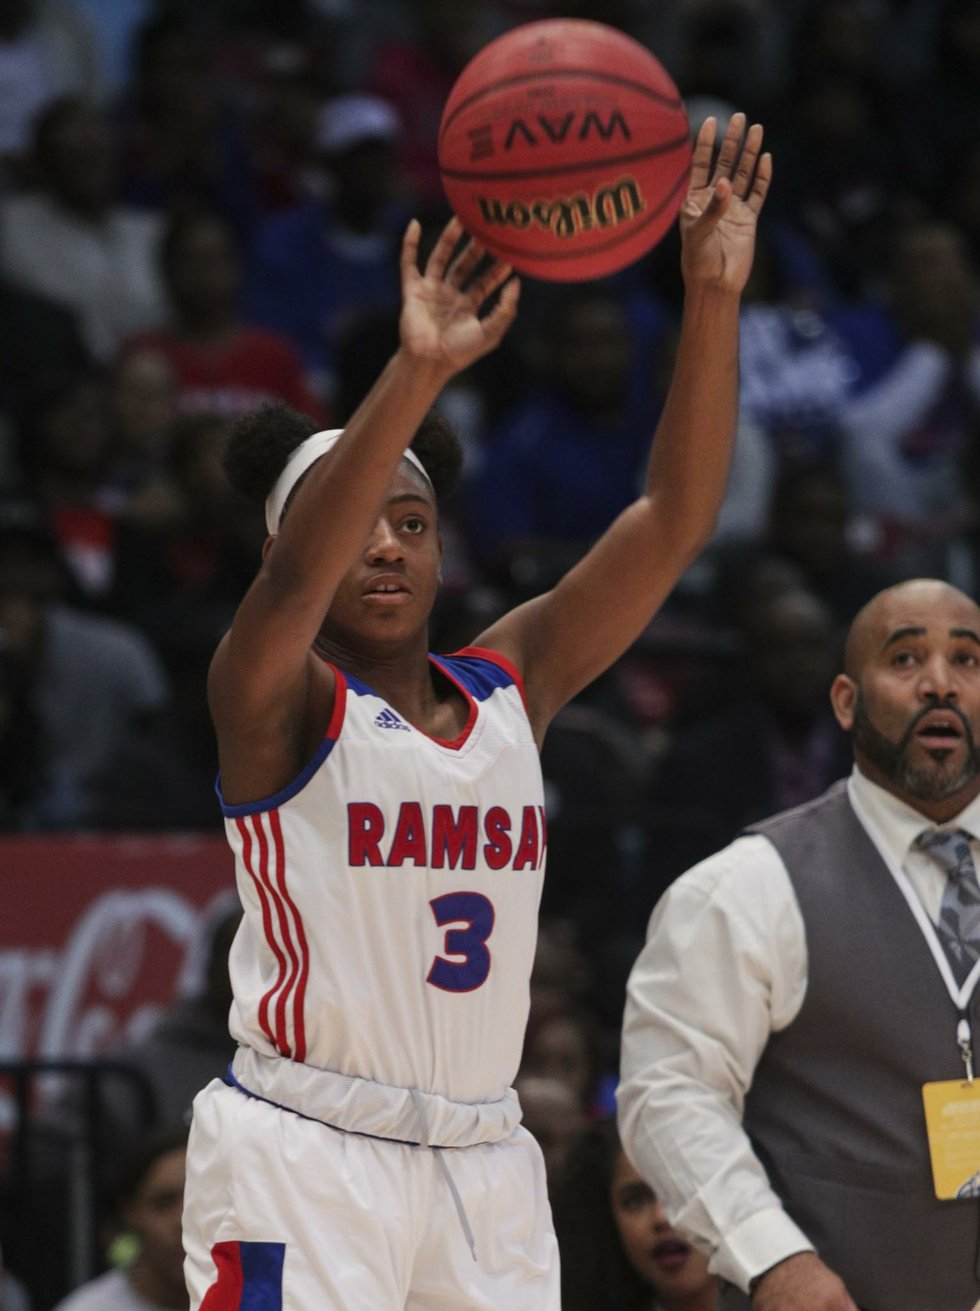 Ramsay Girls Basketball VS Hazel Green State Championship